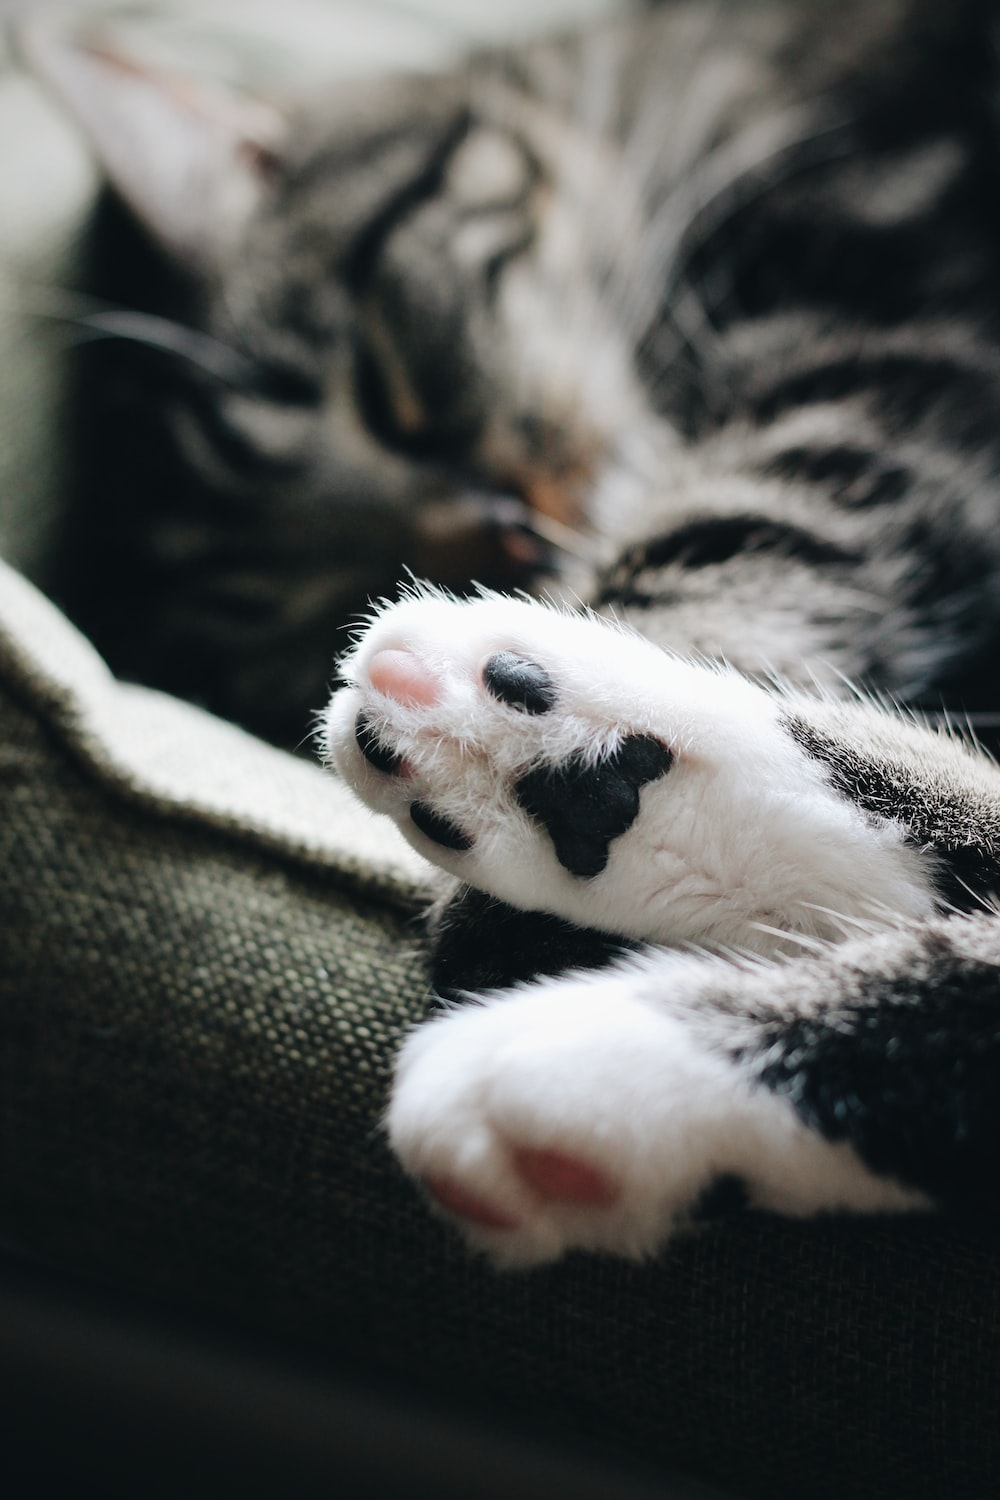 close-up photography of white and black tabby cat paw